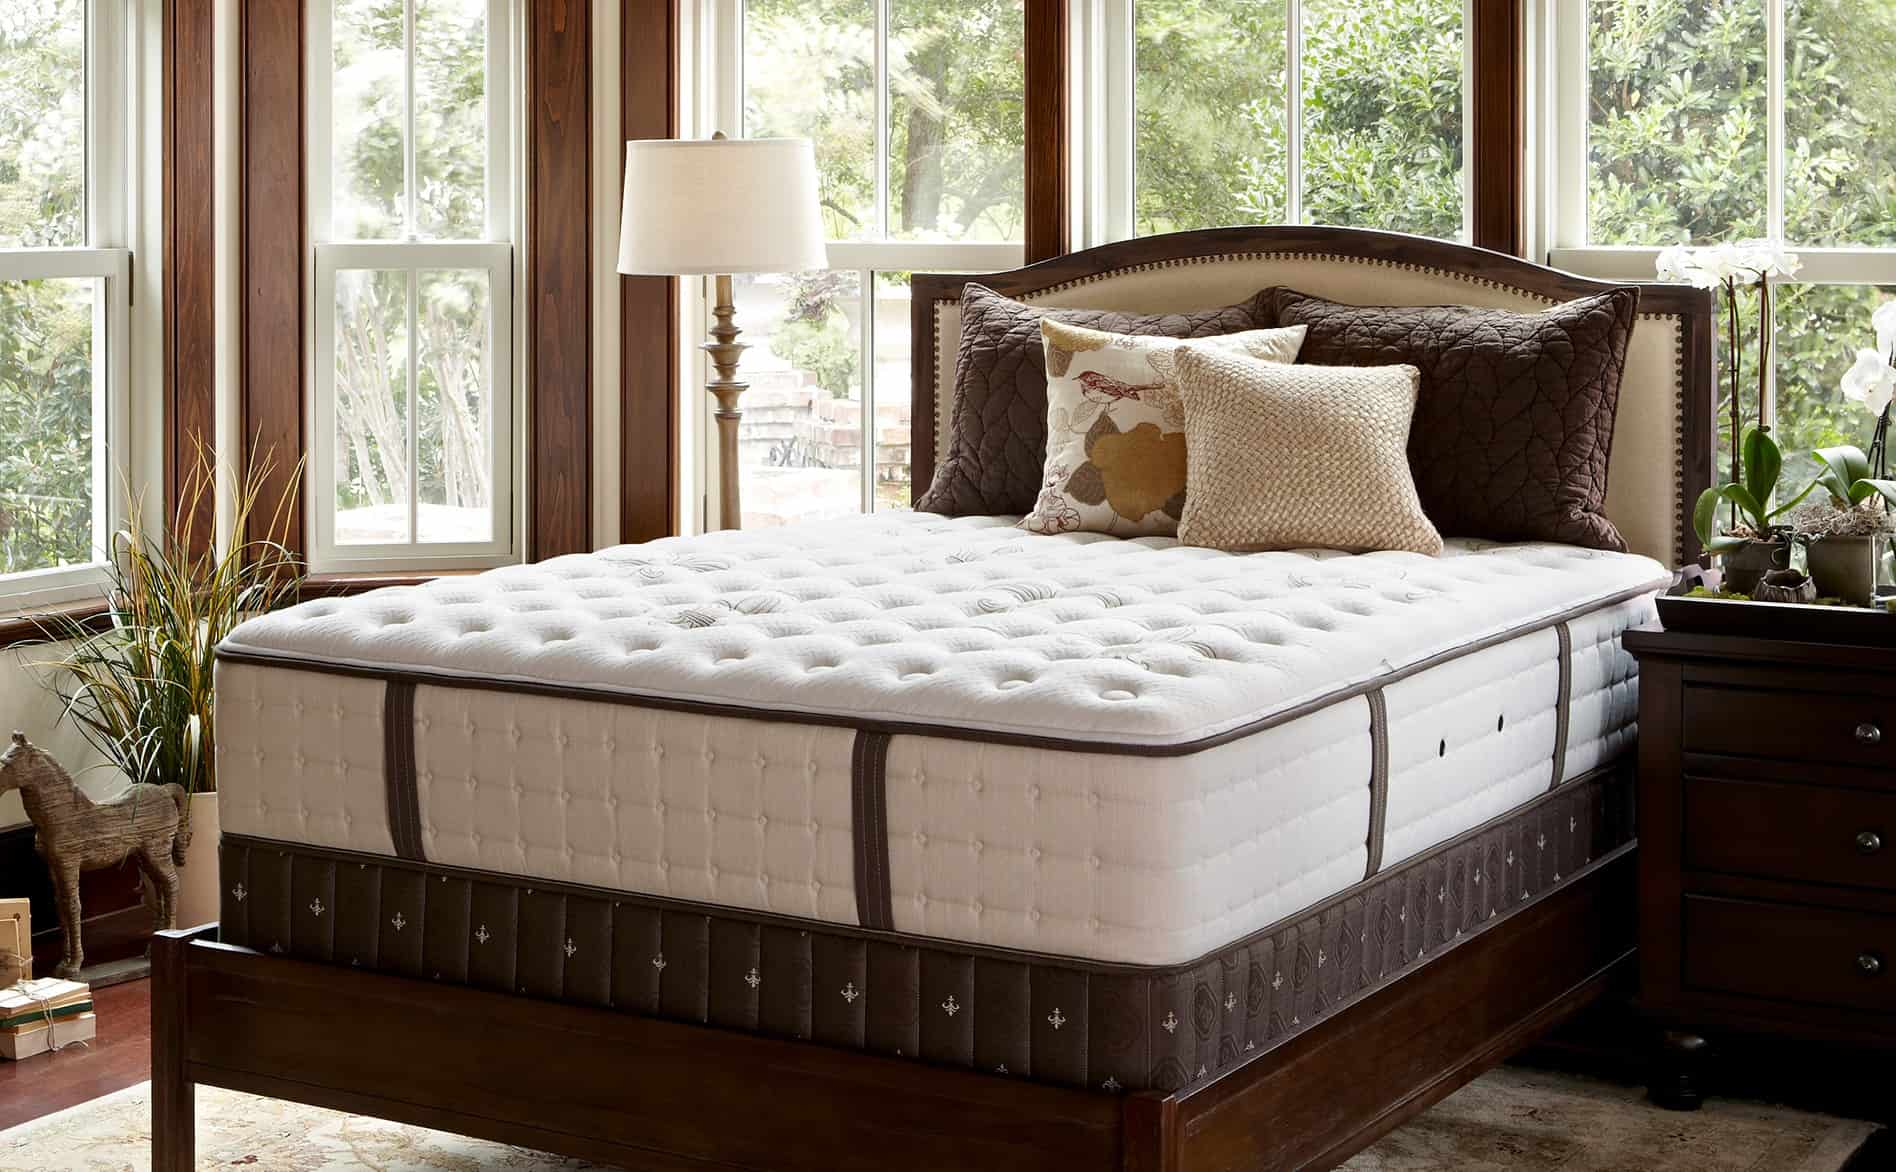 faqs on ghostbed mattress mattress buying guide - Mattress Buying Guide